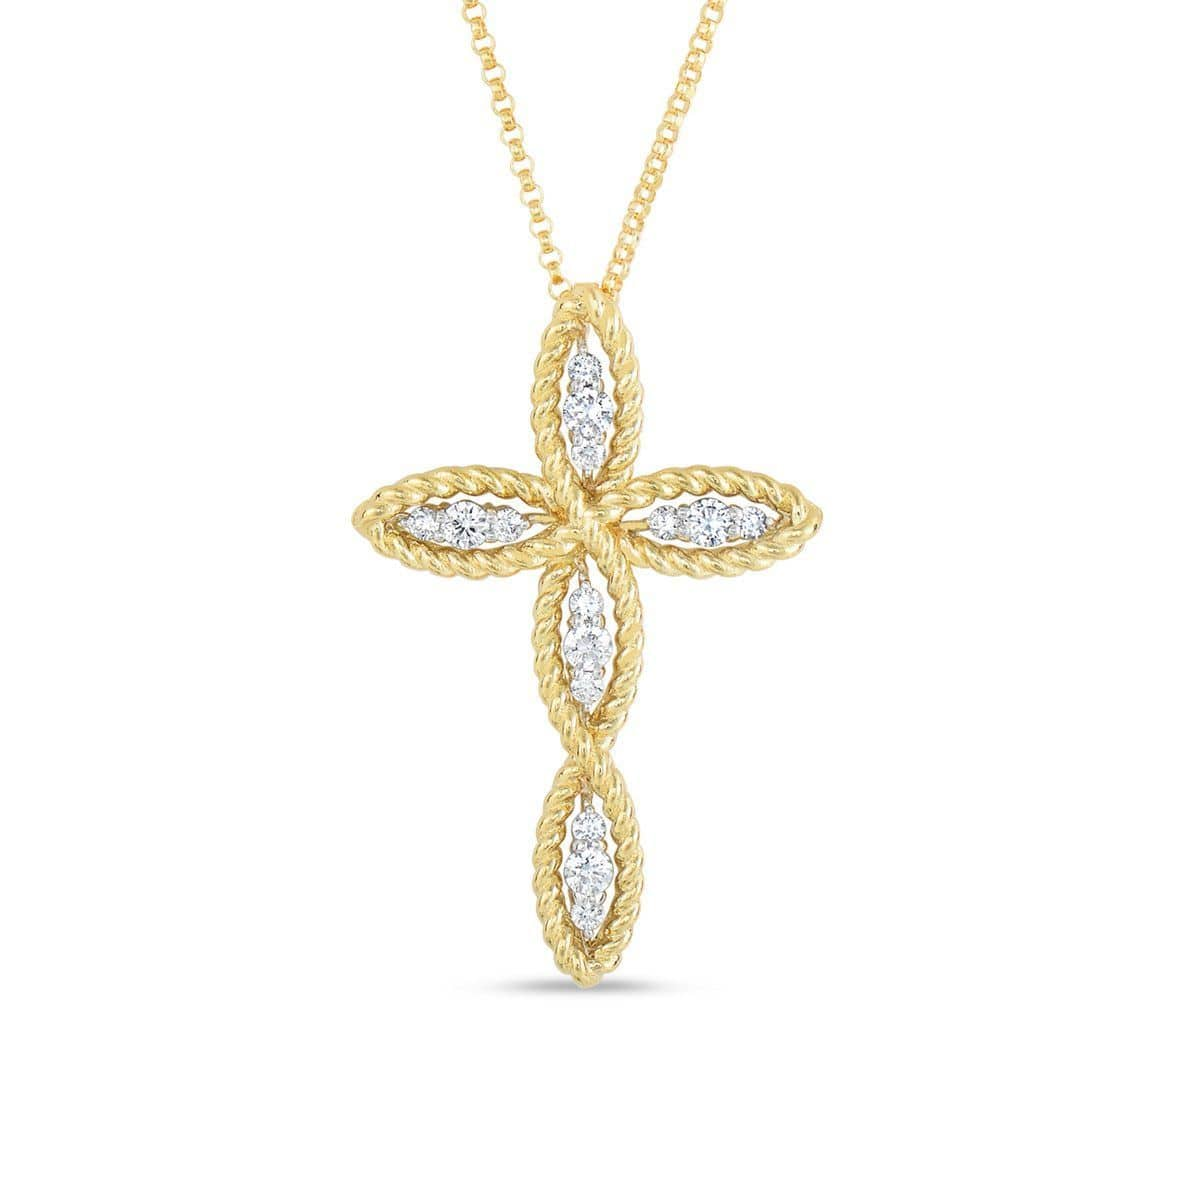 18k Yellow Gold & Diamond Cross Necklace - 7771269AJ18X-Roberto Coin-Renee Taylor Gallery